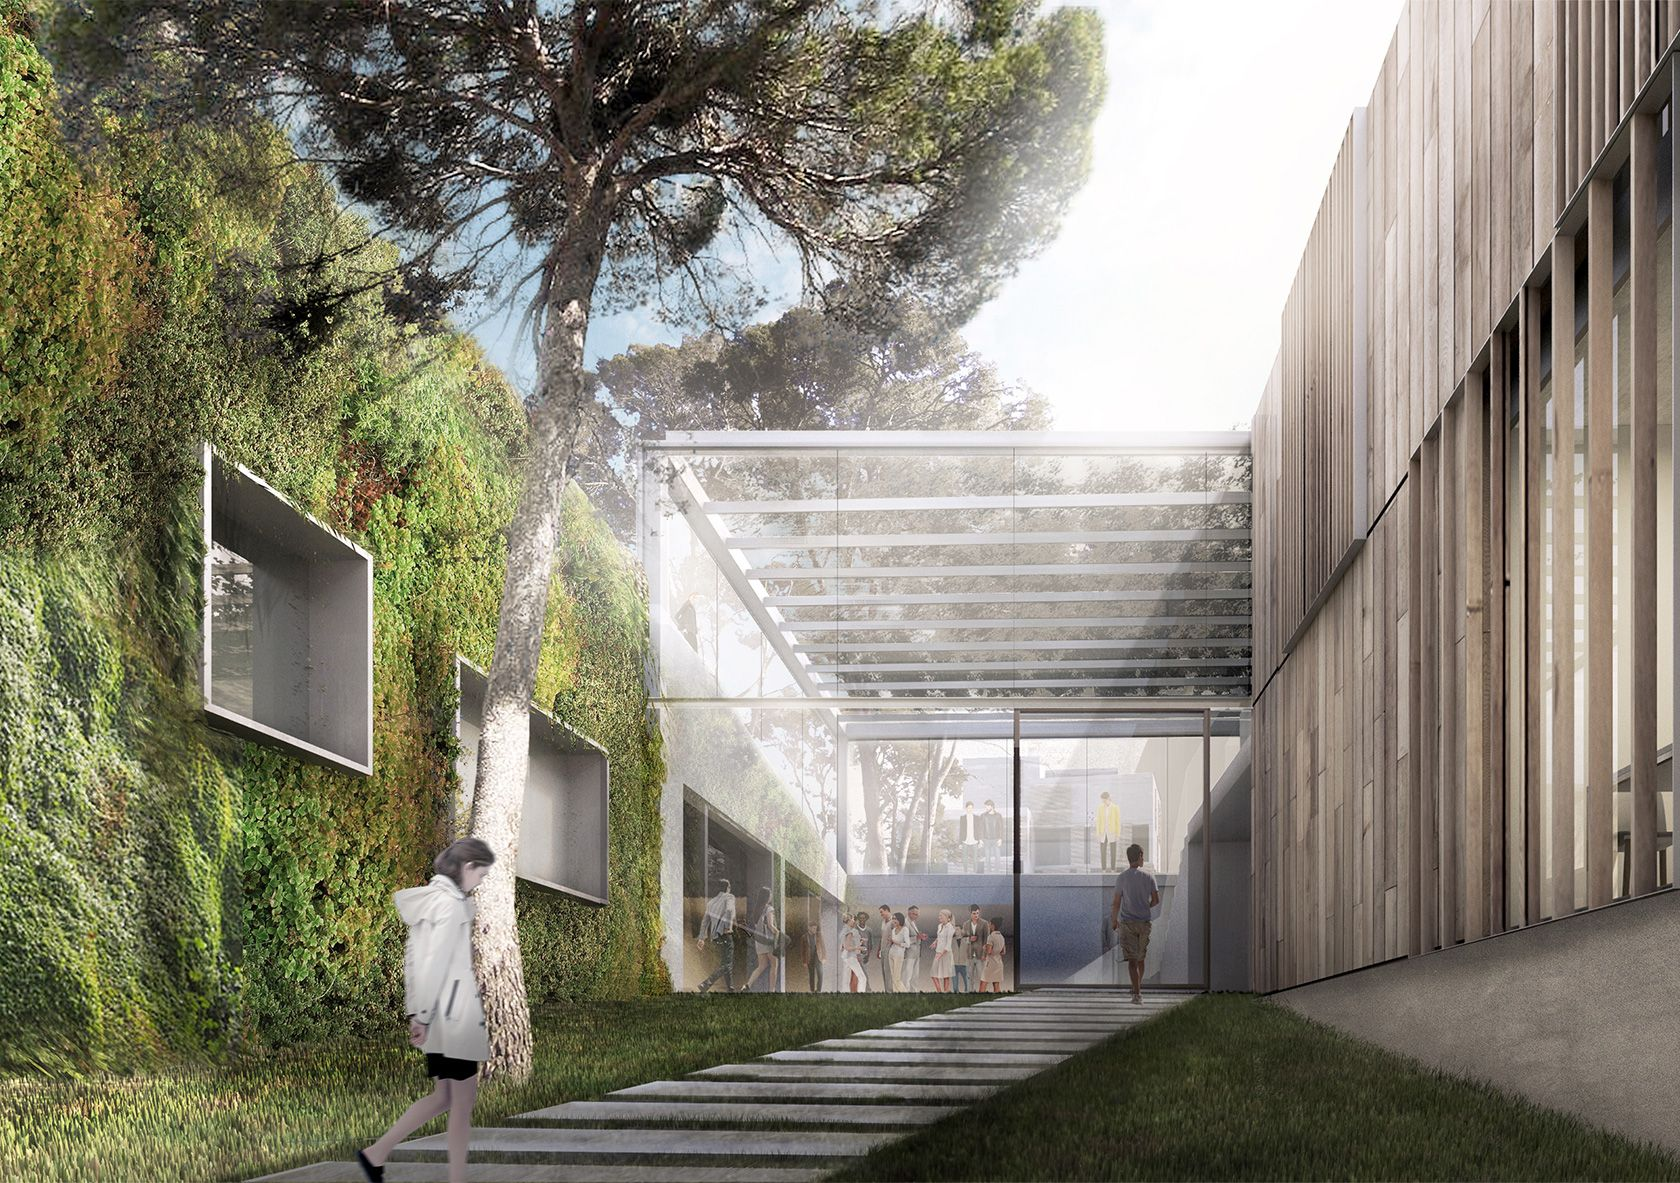 valldoreix public spaces landscaping architecture anna noguera